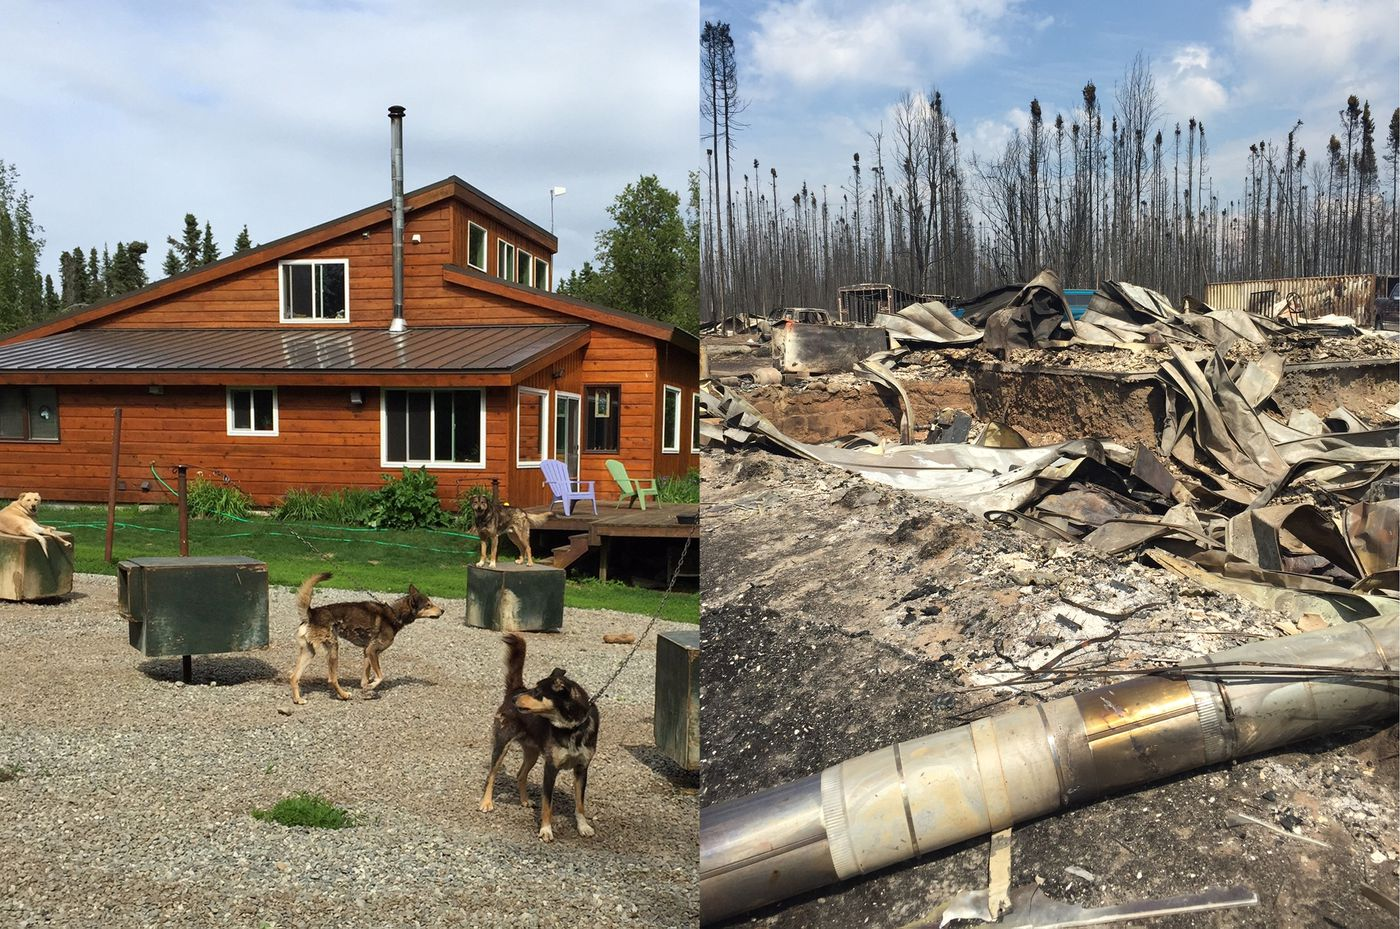 Two Jonrowe family photos show their property in Willow. The photo on the left was taken days before the home was destroyed in the Sockeye Fire in June 2015. The immediate aftermath is shown at right.